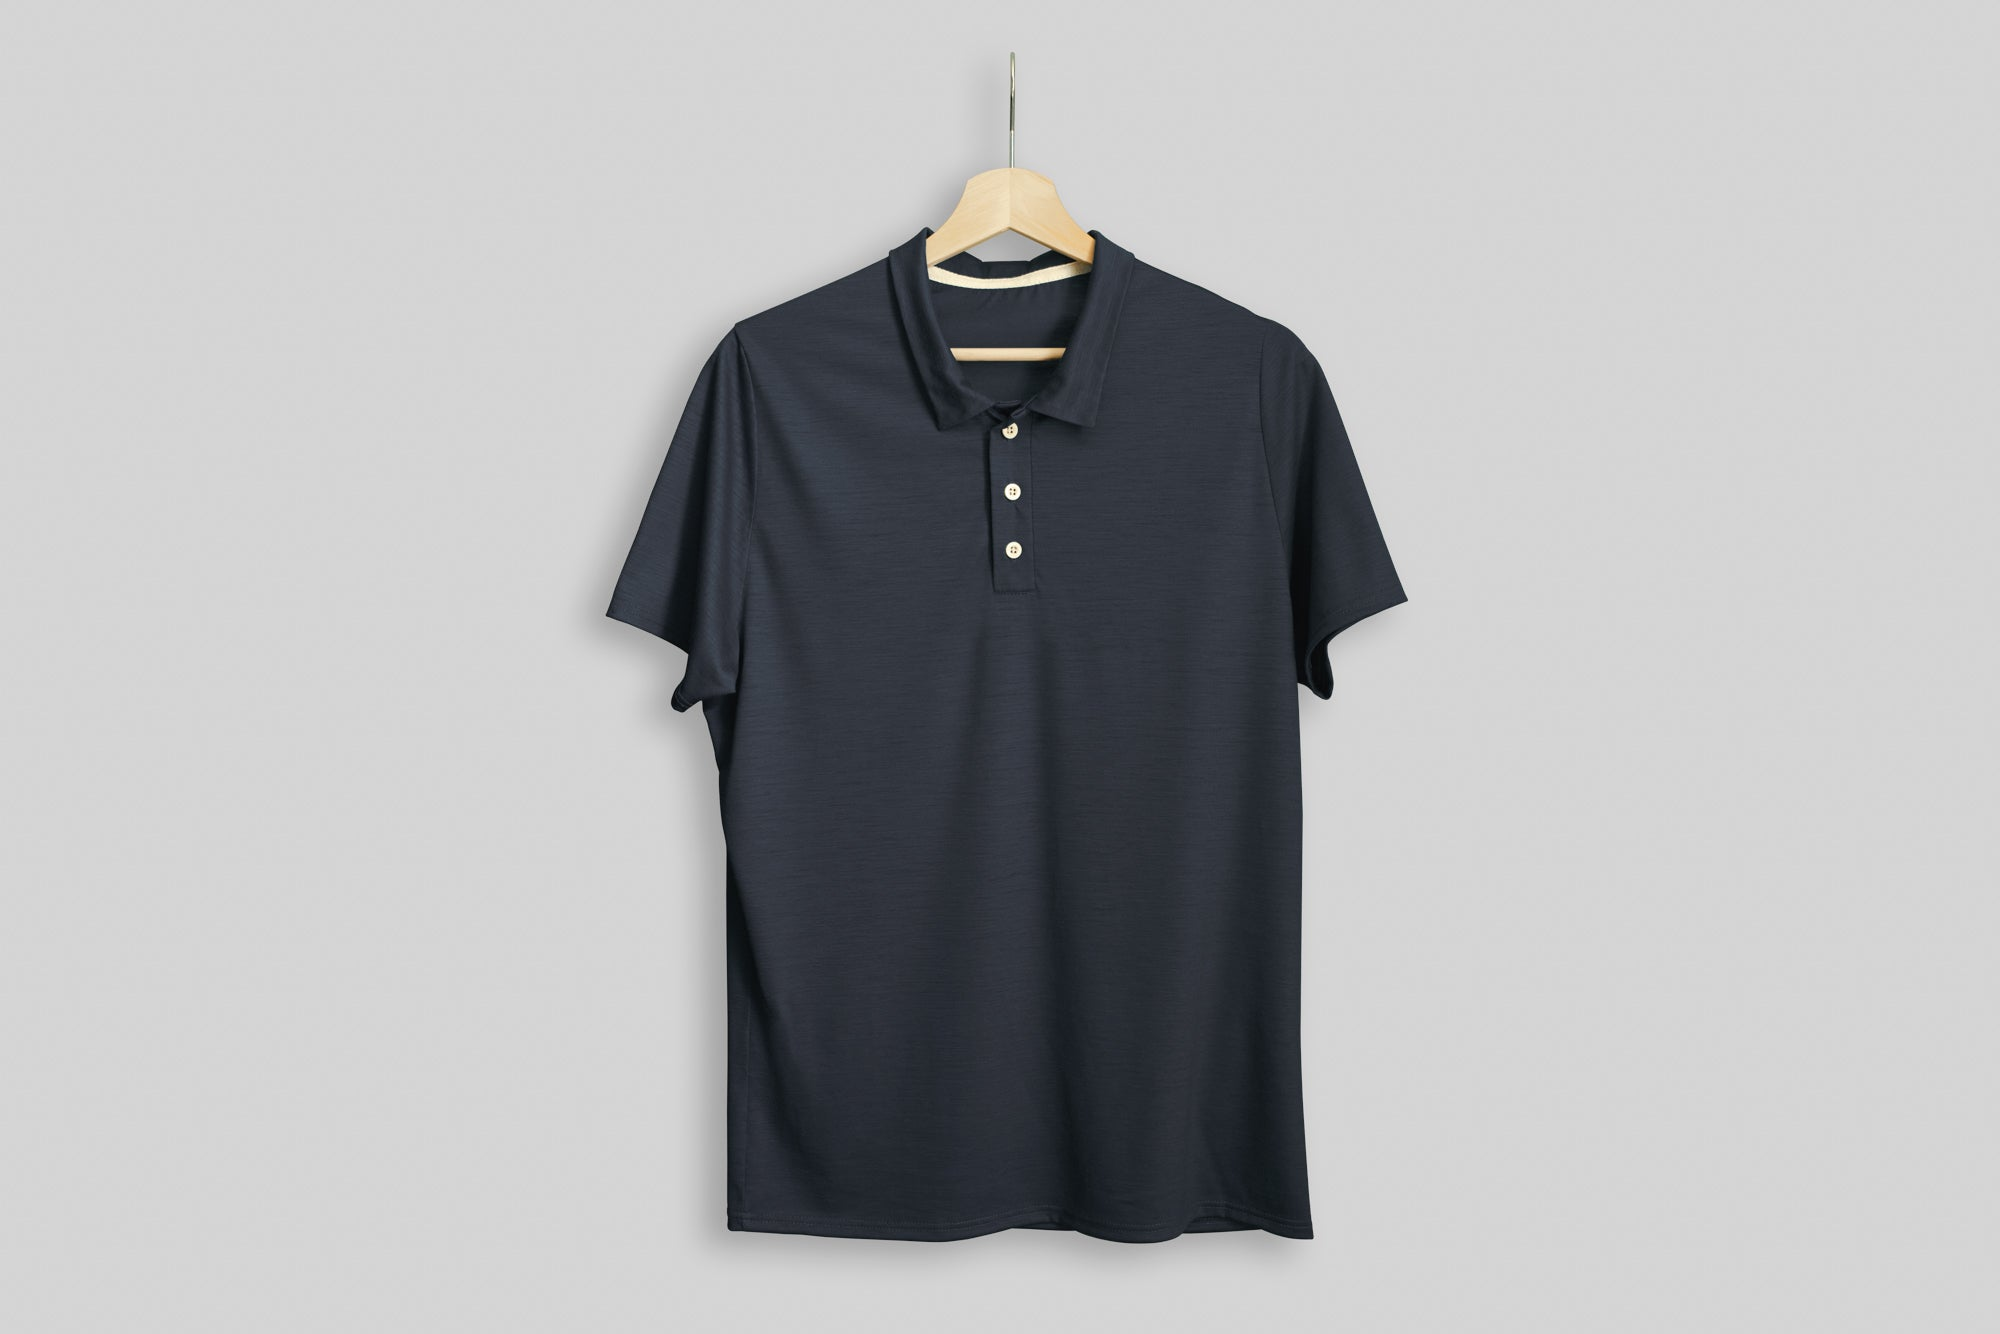 Minimalist Merino Wool Golf Shirt